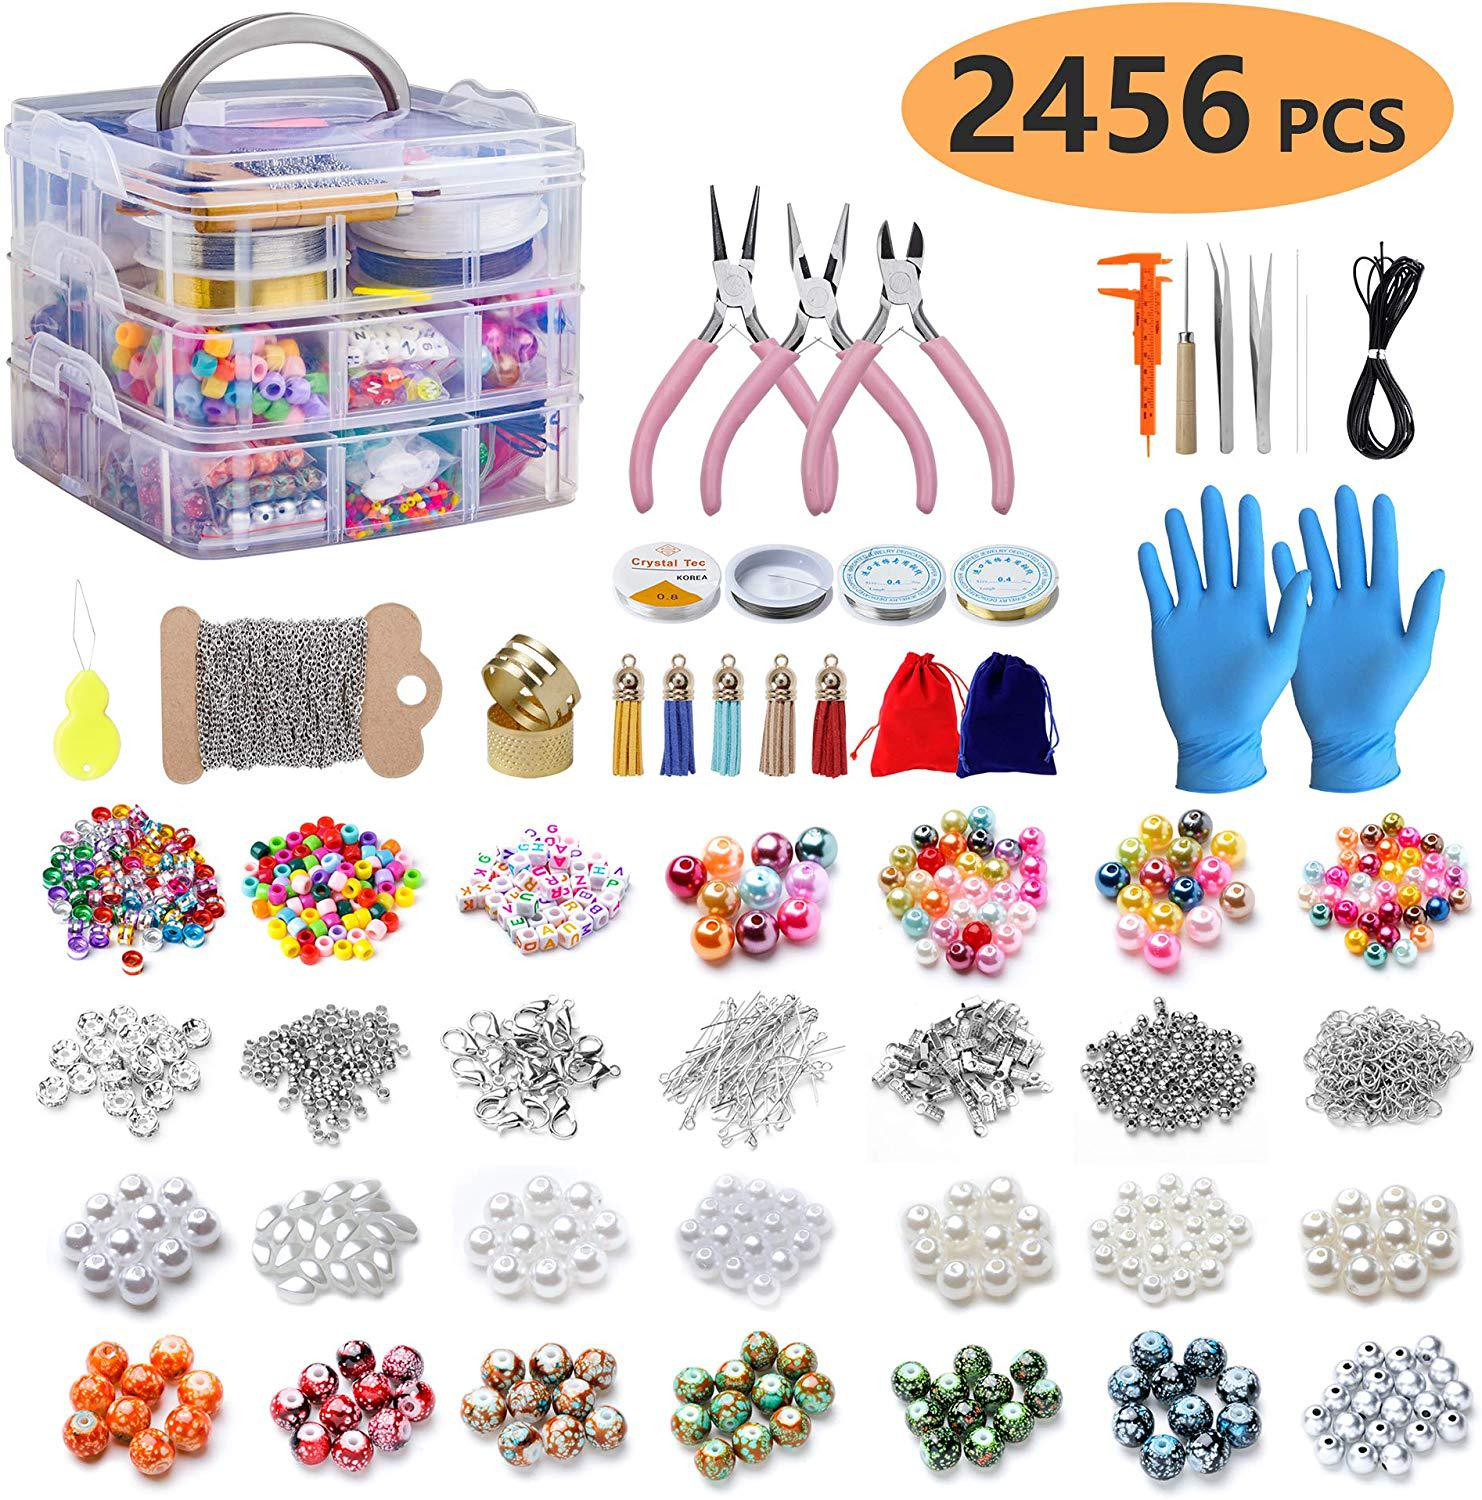 2456pcs Large Jewellery Making Starter Kit Findings Tools Clip Buckle Lobster Clasp Open Jump Rings